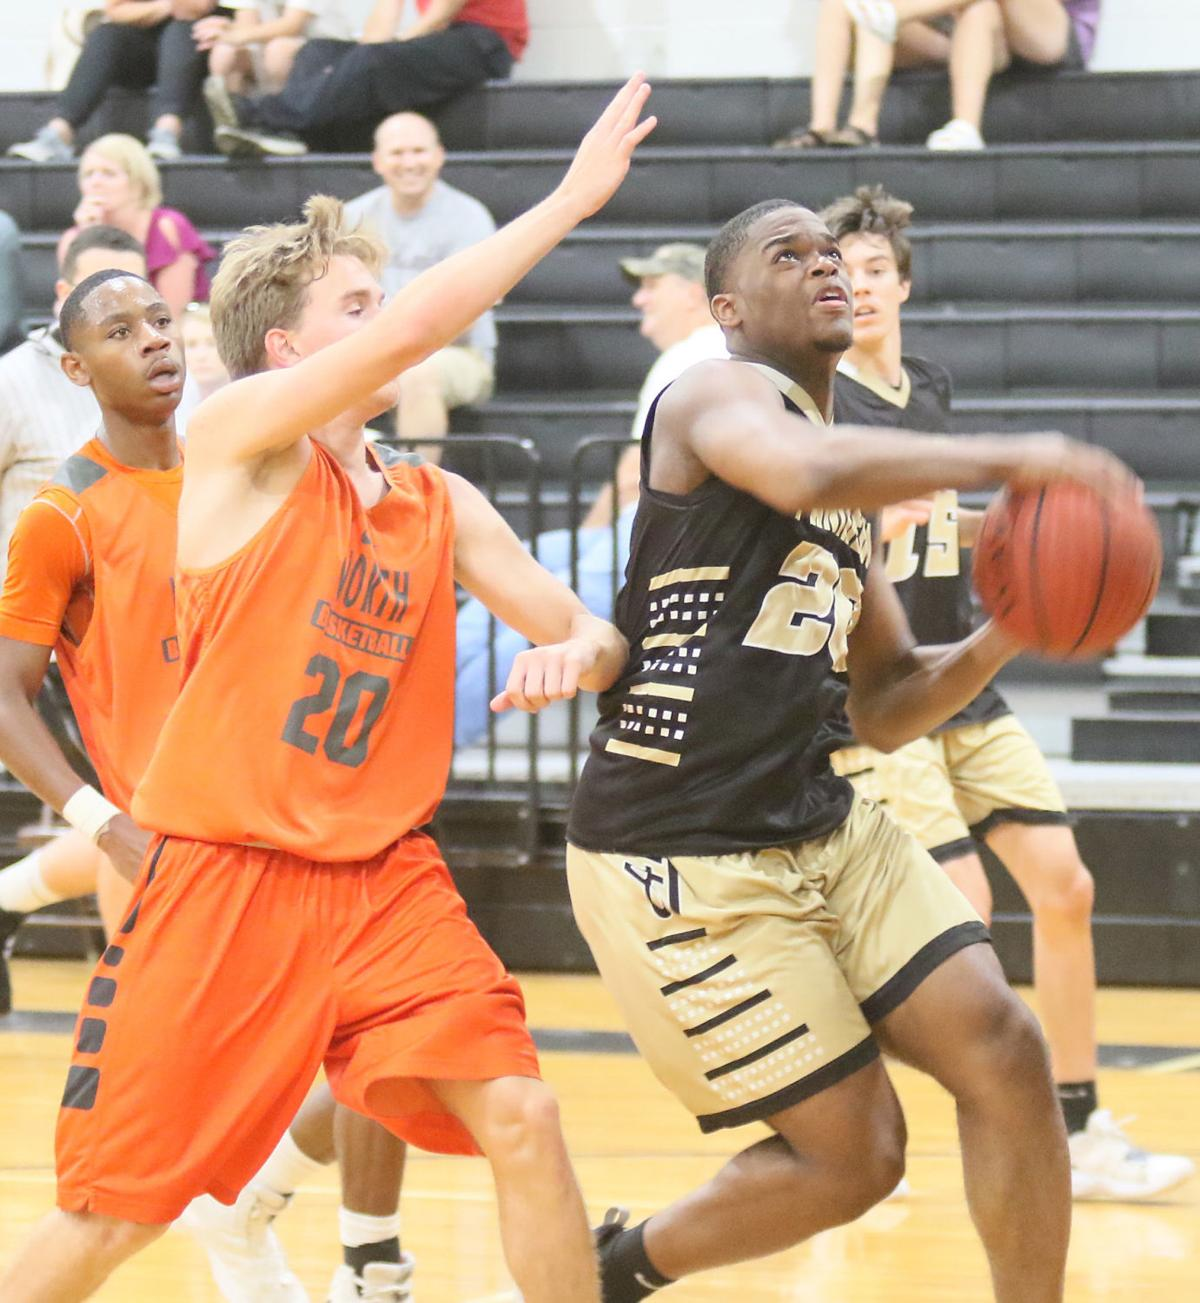 Amory's Thompson amping up his game for senior year   Sports